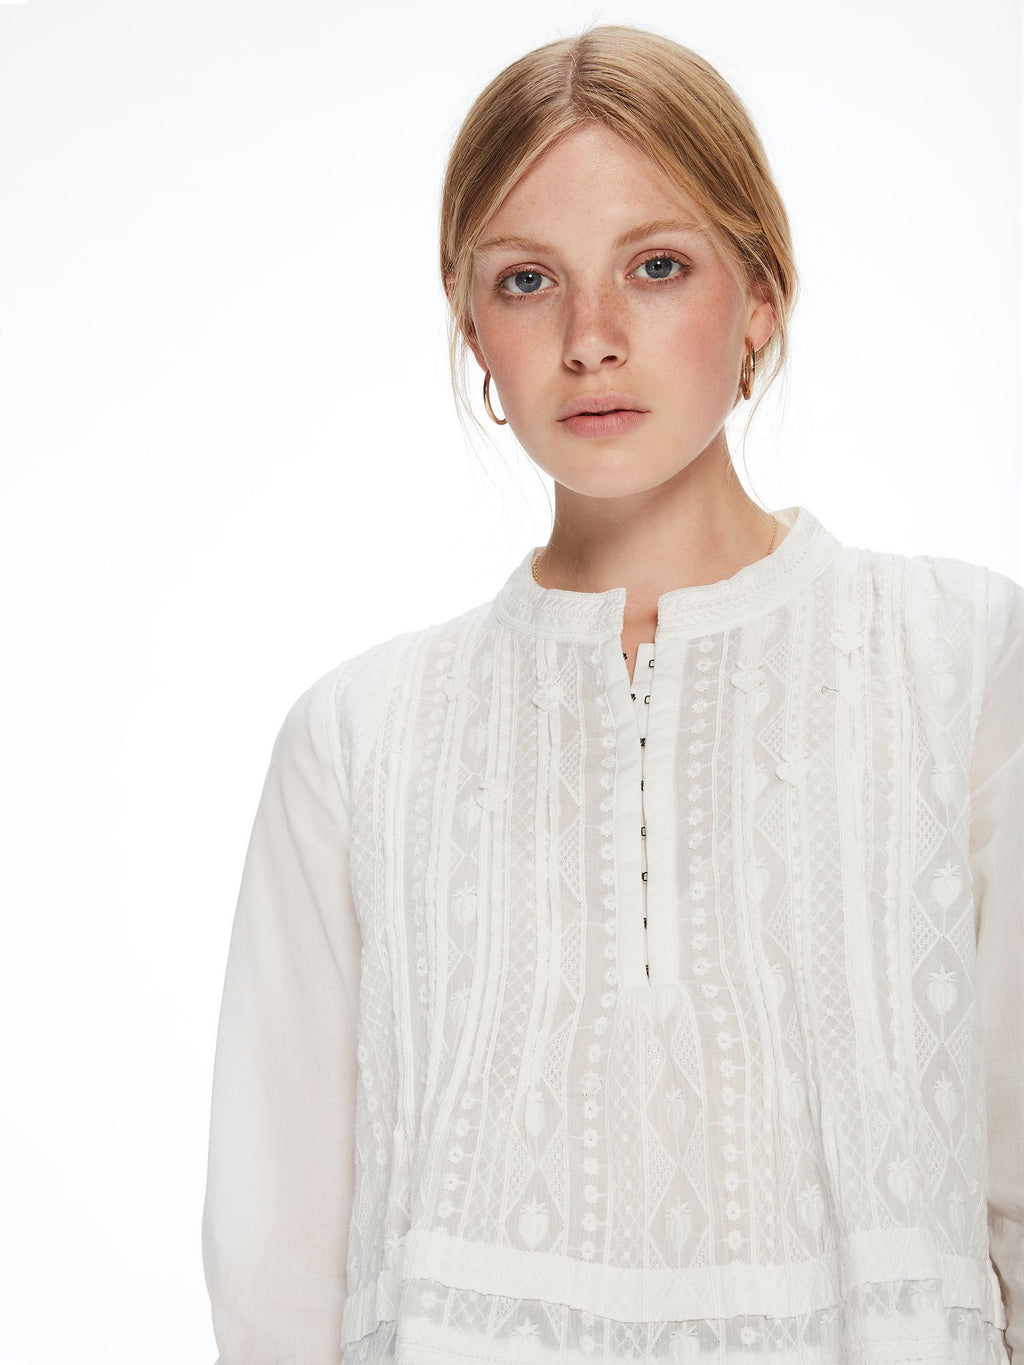 SCOTCH AND SODA - Embroidered Tunic Top online at PAYA boutique